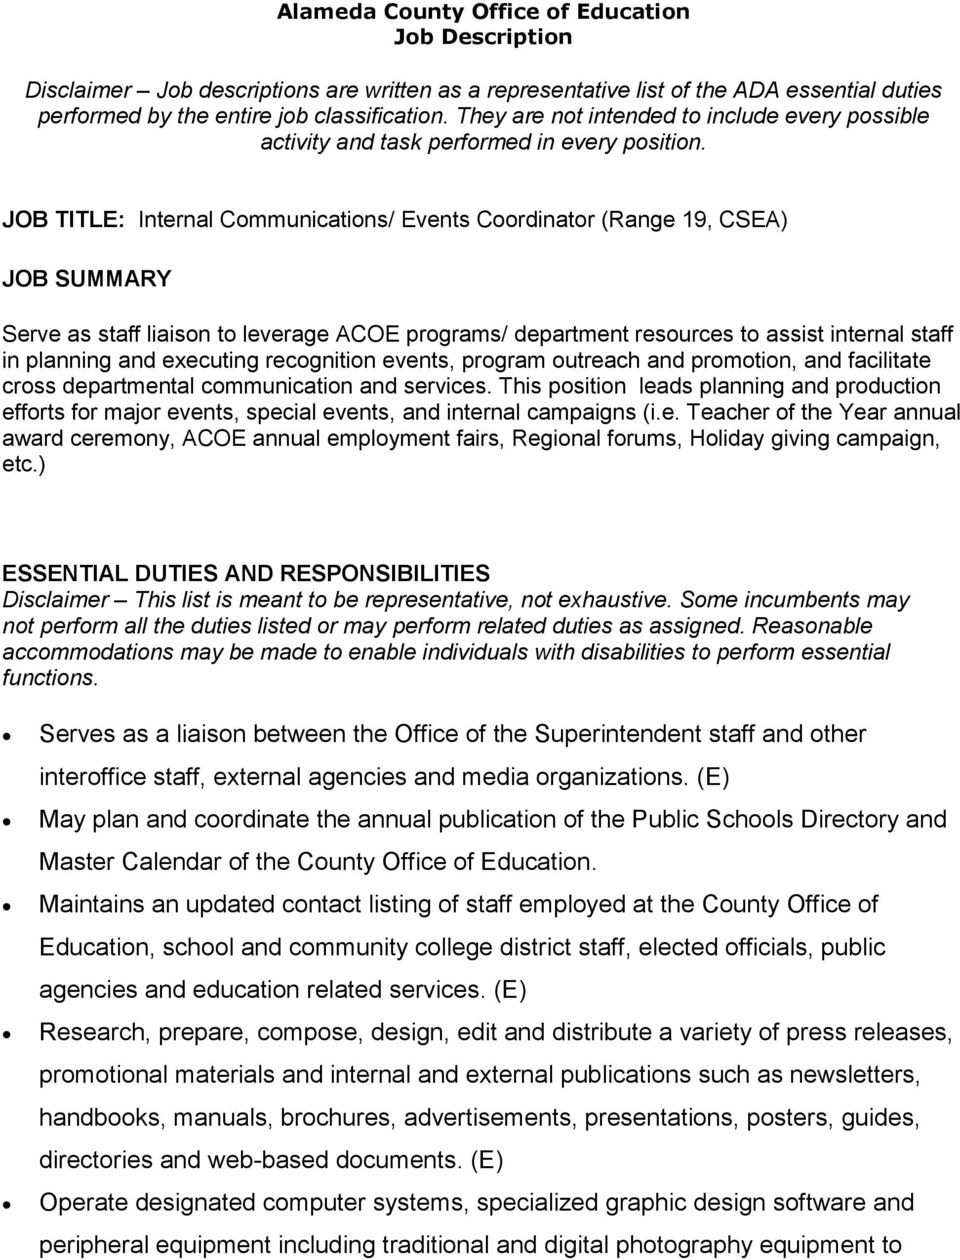 JOB TITLE: Internal Communications/ Events Coordinator (Range 19, CSEA) JOB SUMMARY Serve as staff liaison to leverage ACOE programs/ department resources to assist internal staff in planning and